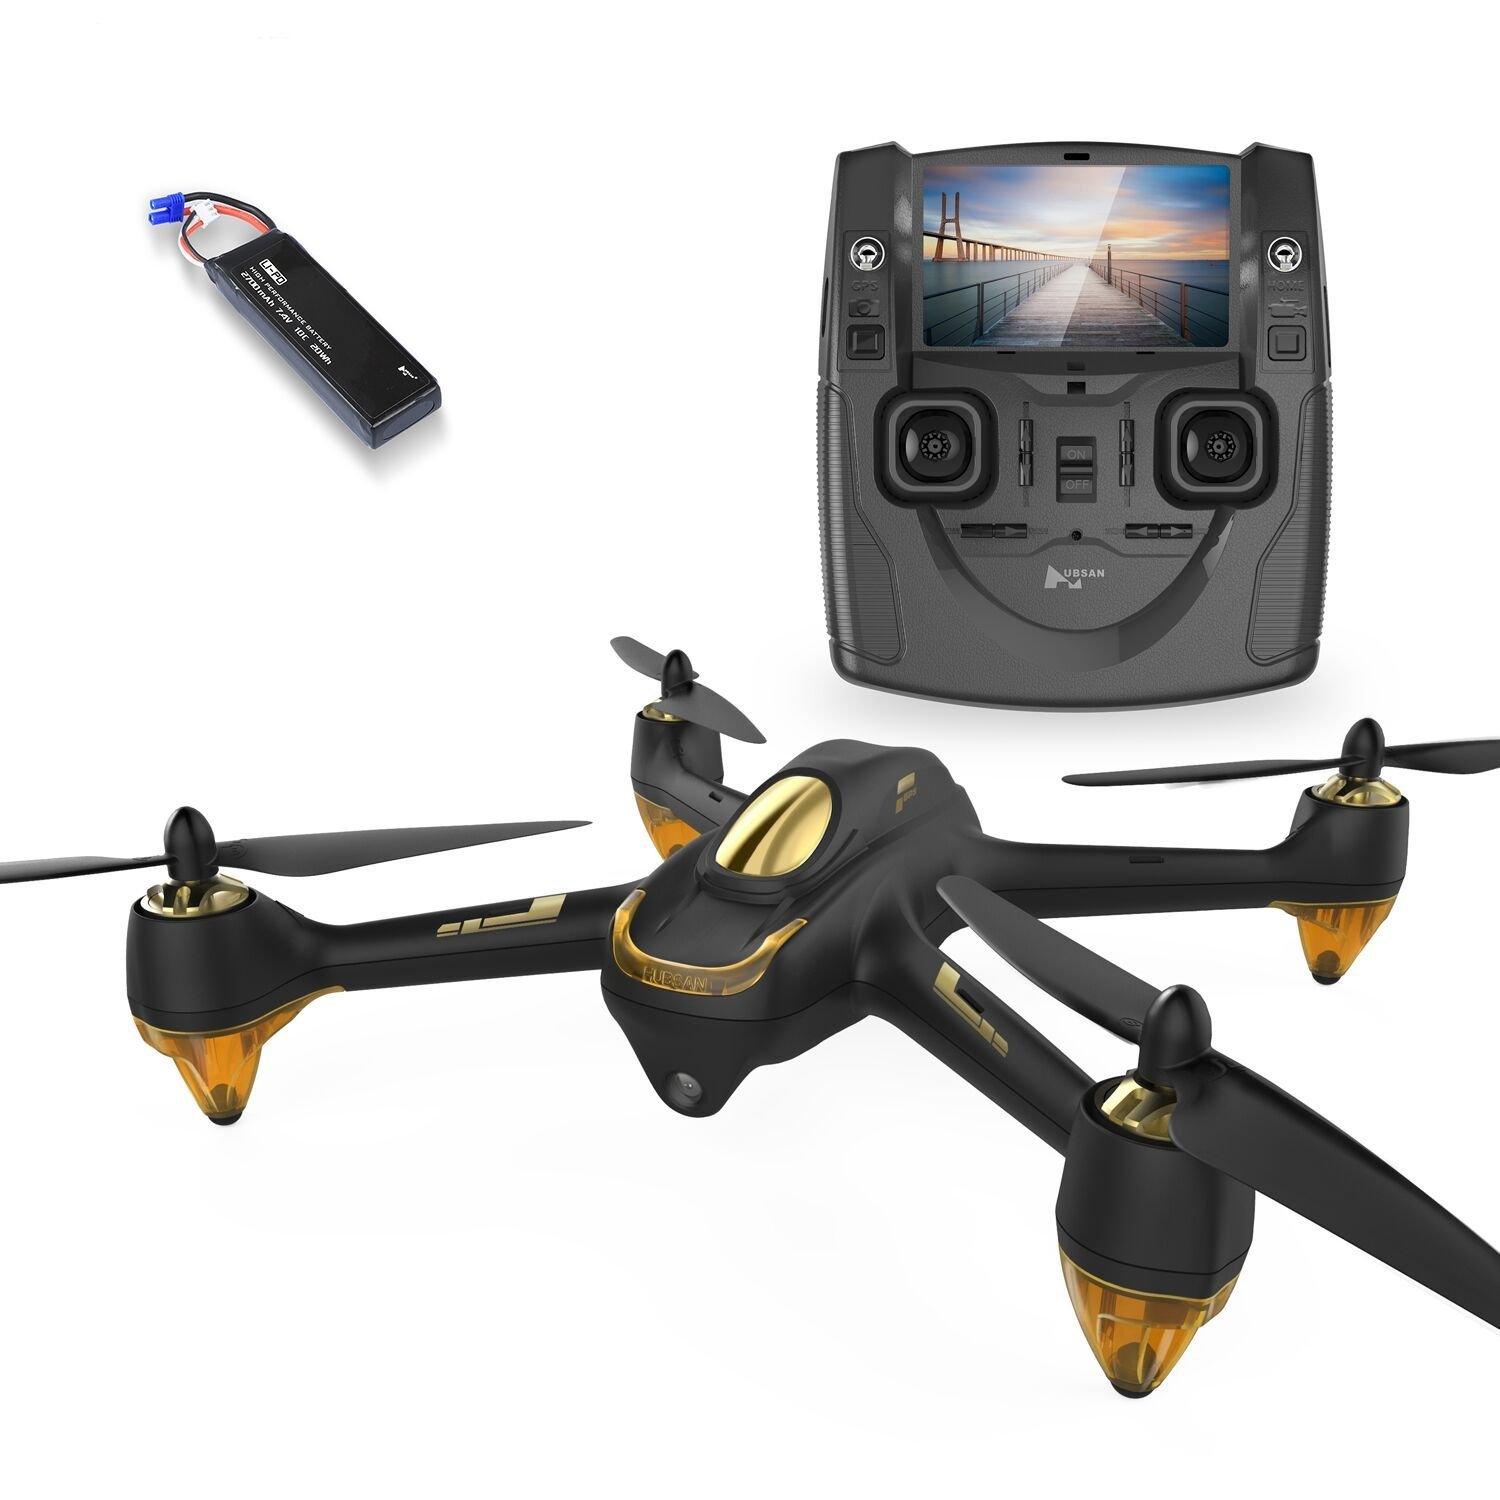 HUBSAN H501S X4 Drone 4 Channel GPS Altitude Mode 5.8GHz Transmitter with 1080P HD Camera RC Quadcopter RTF Standard Edition Black